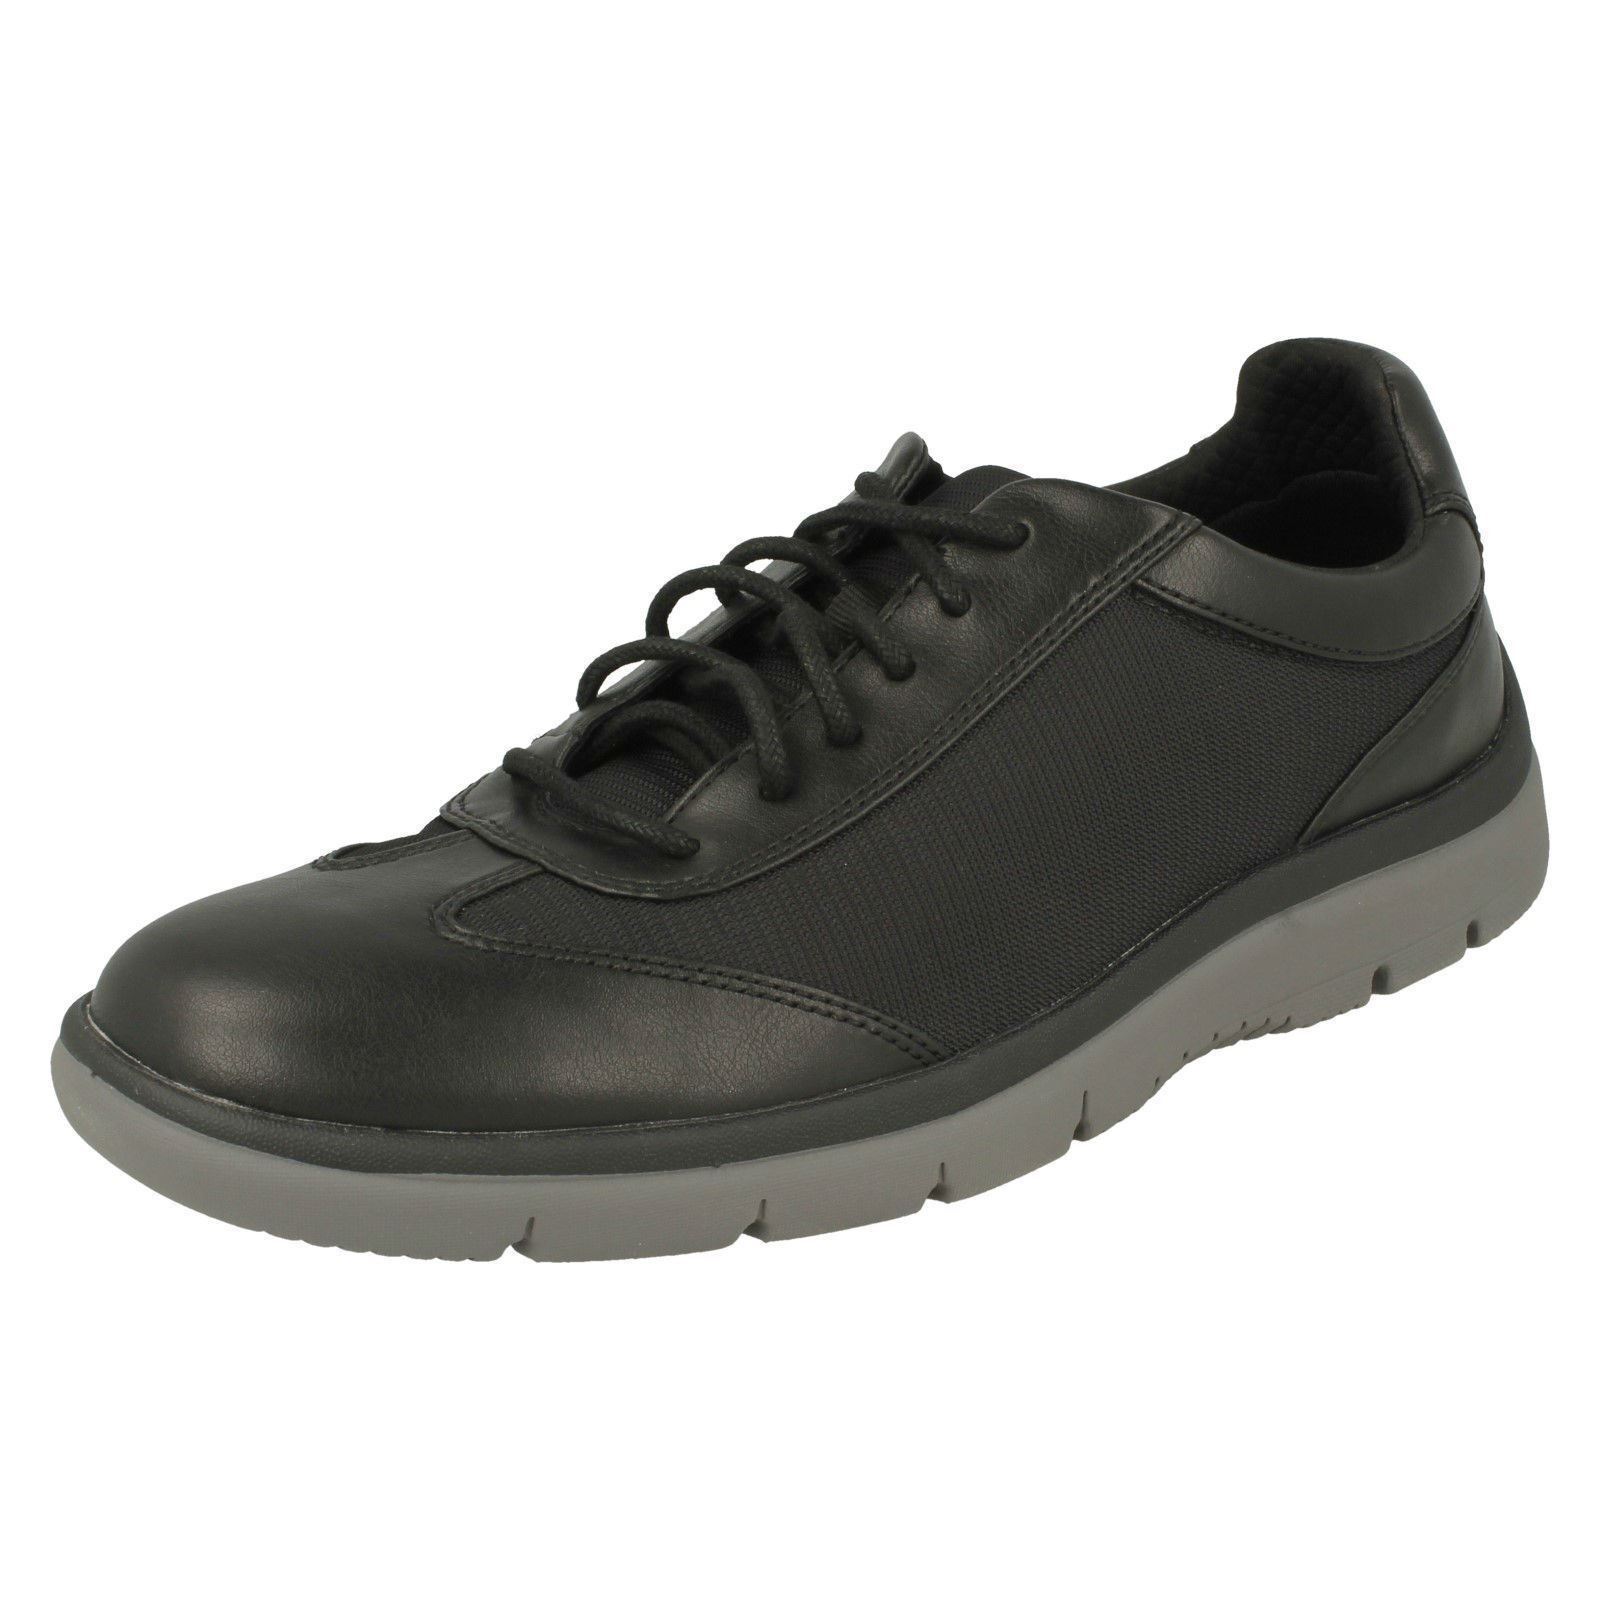 Clarks  Uomo Casual Lace Up Trainers Tunsil Ridge